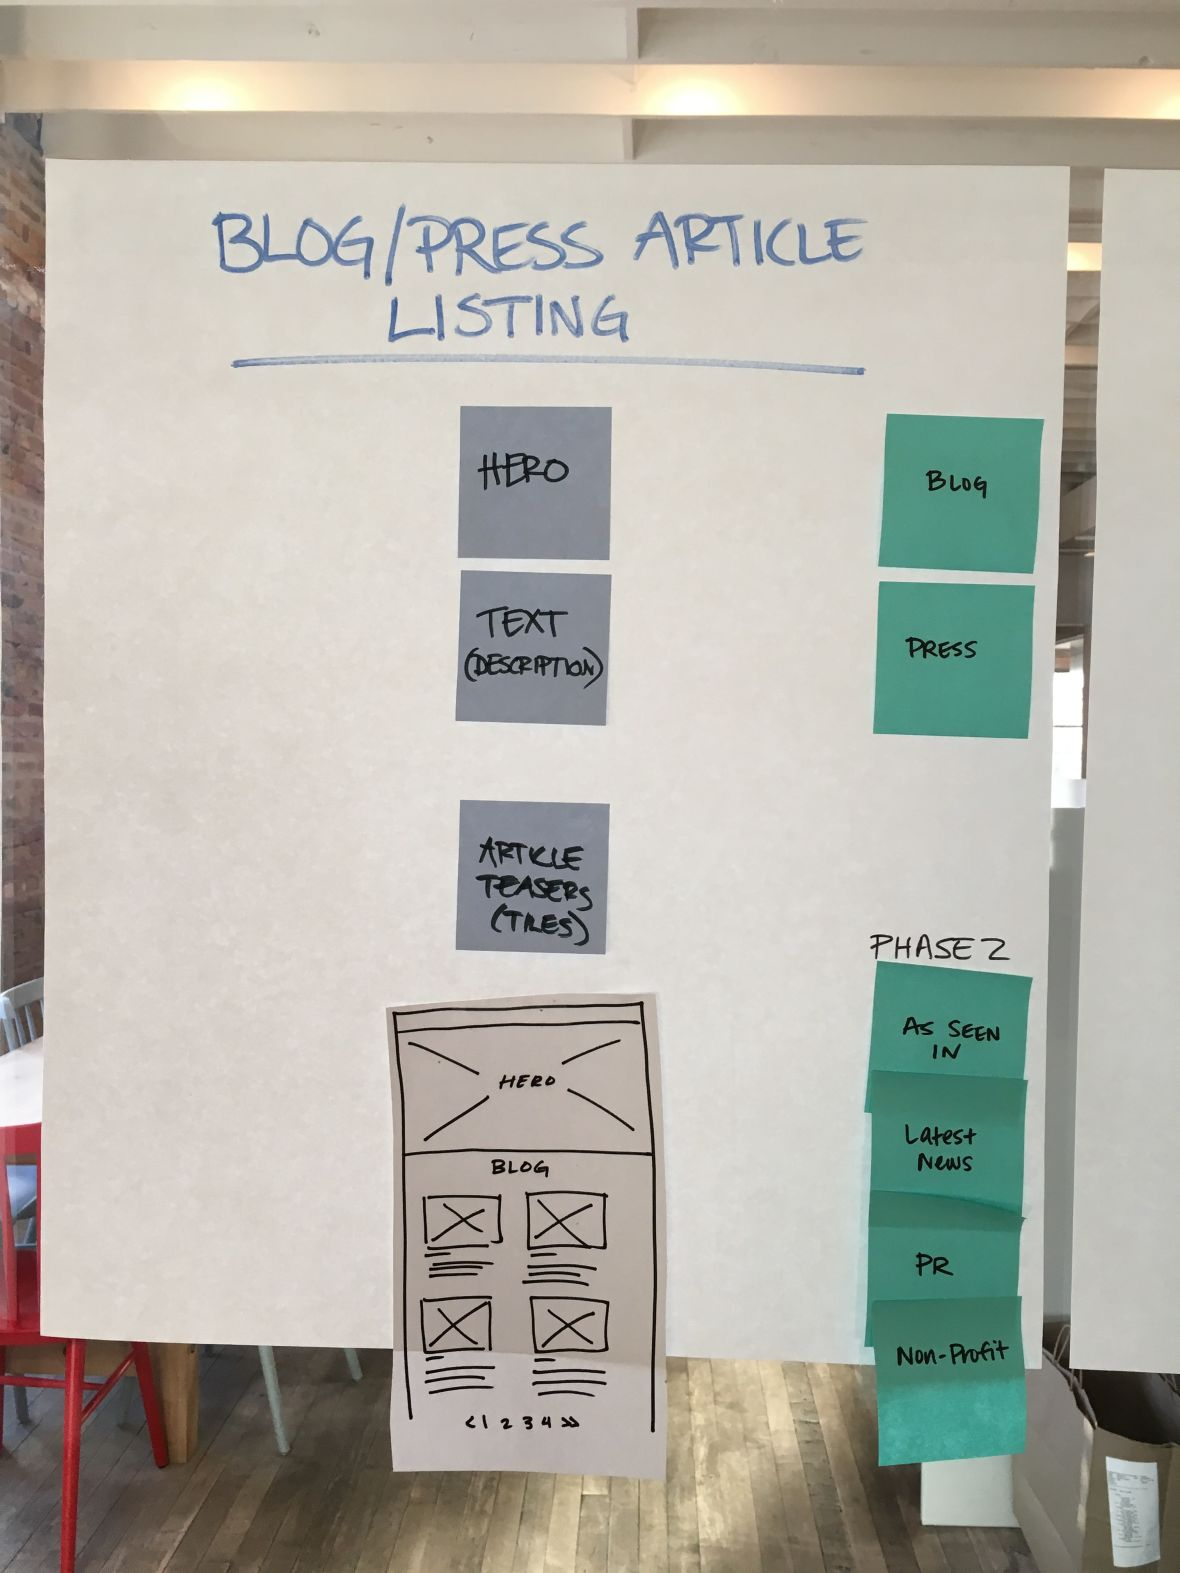 photo of whiteboard with post-it notes showing the layout of a blog listing page